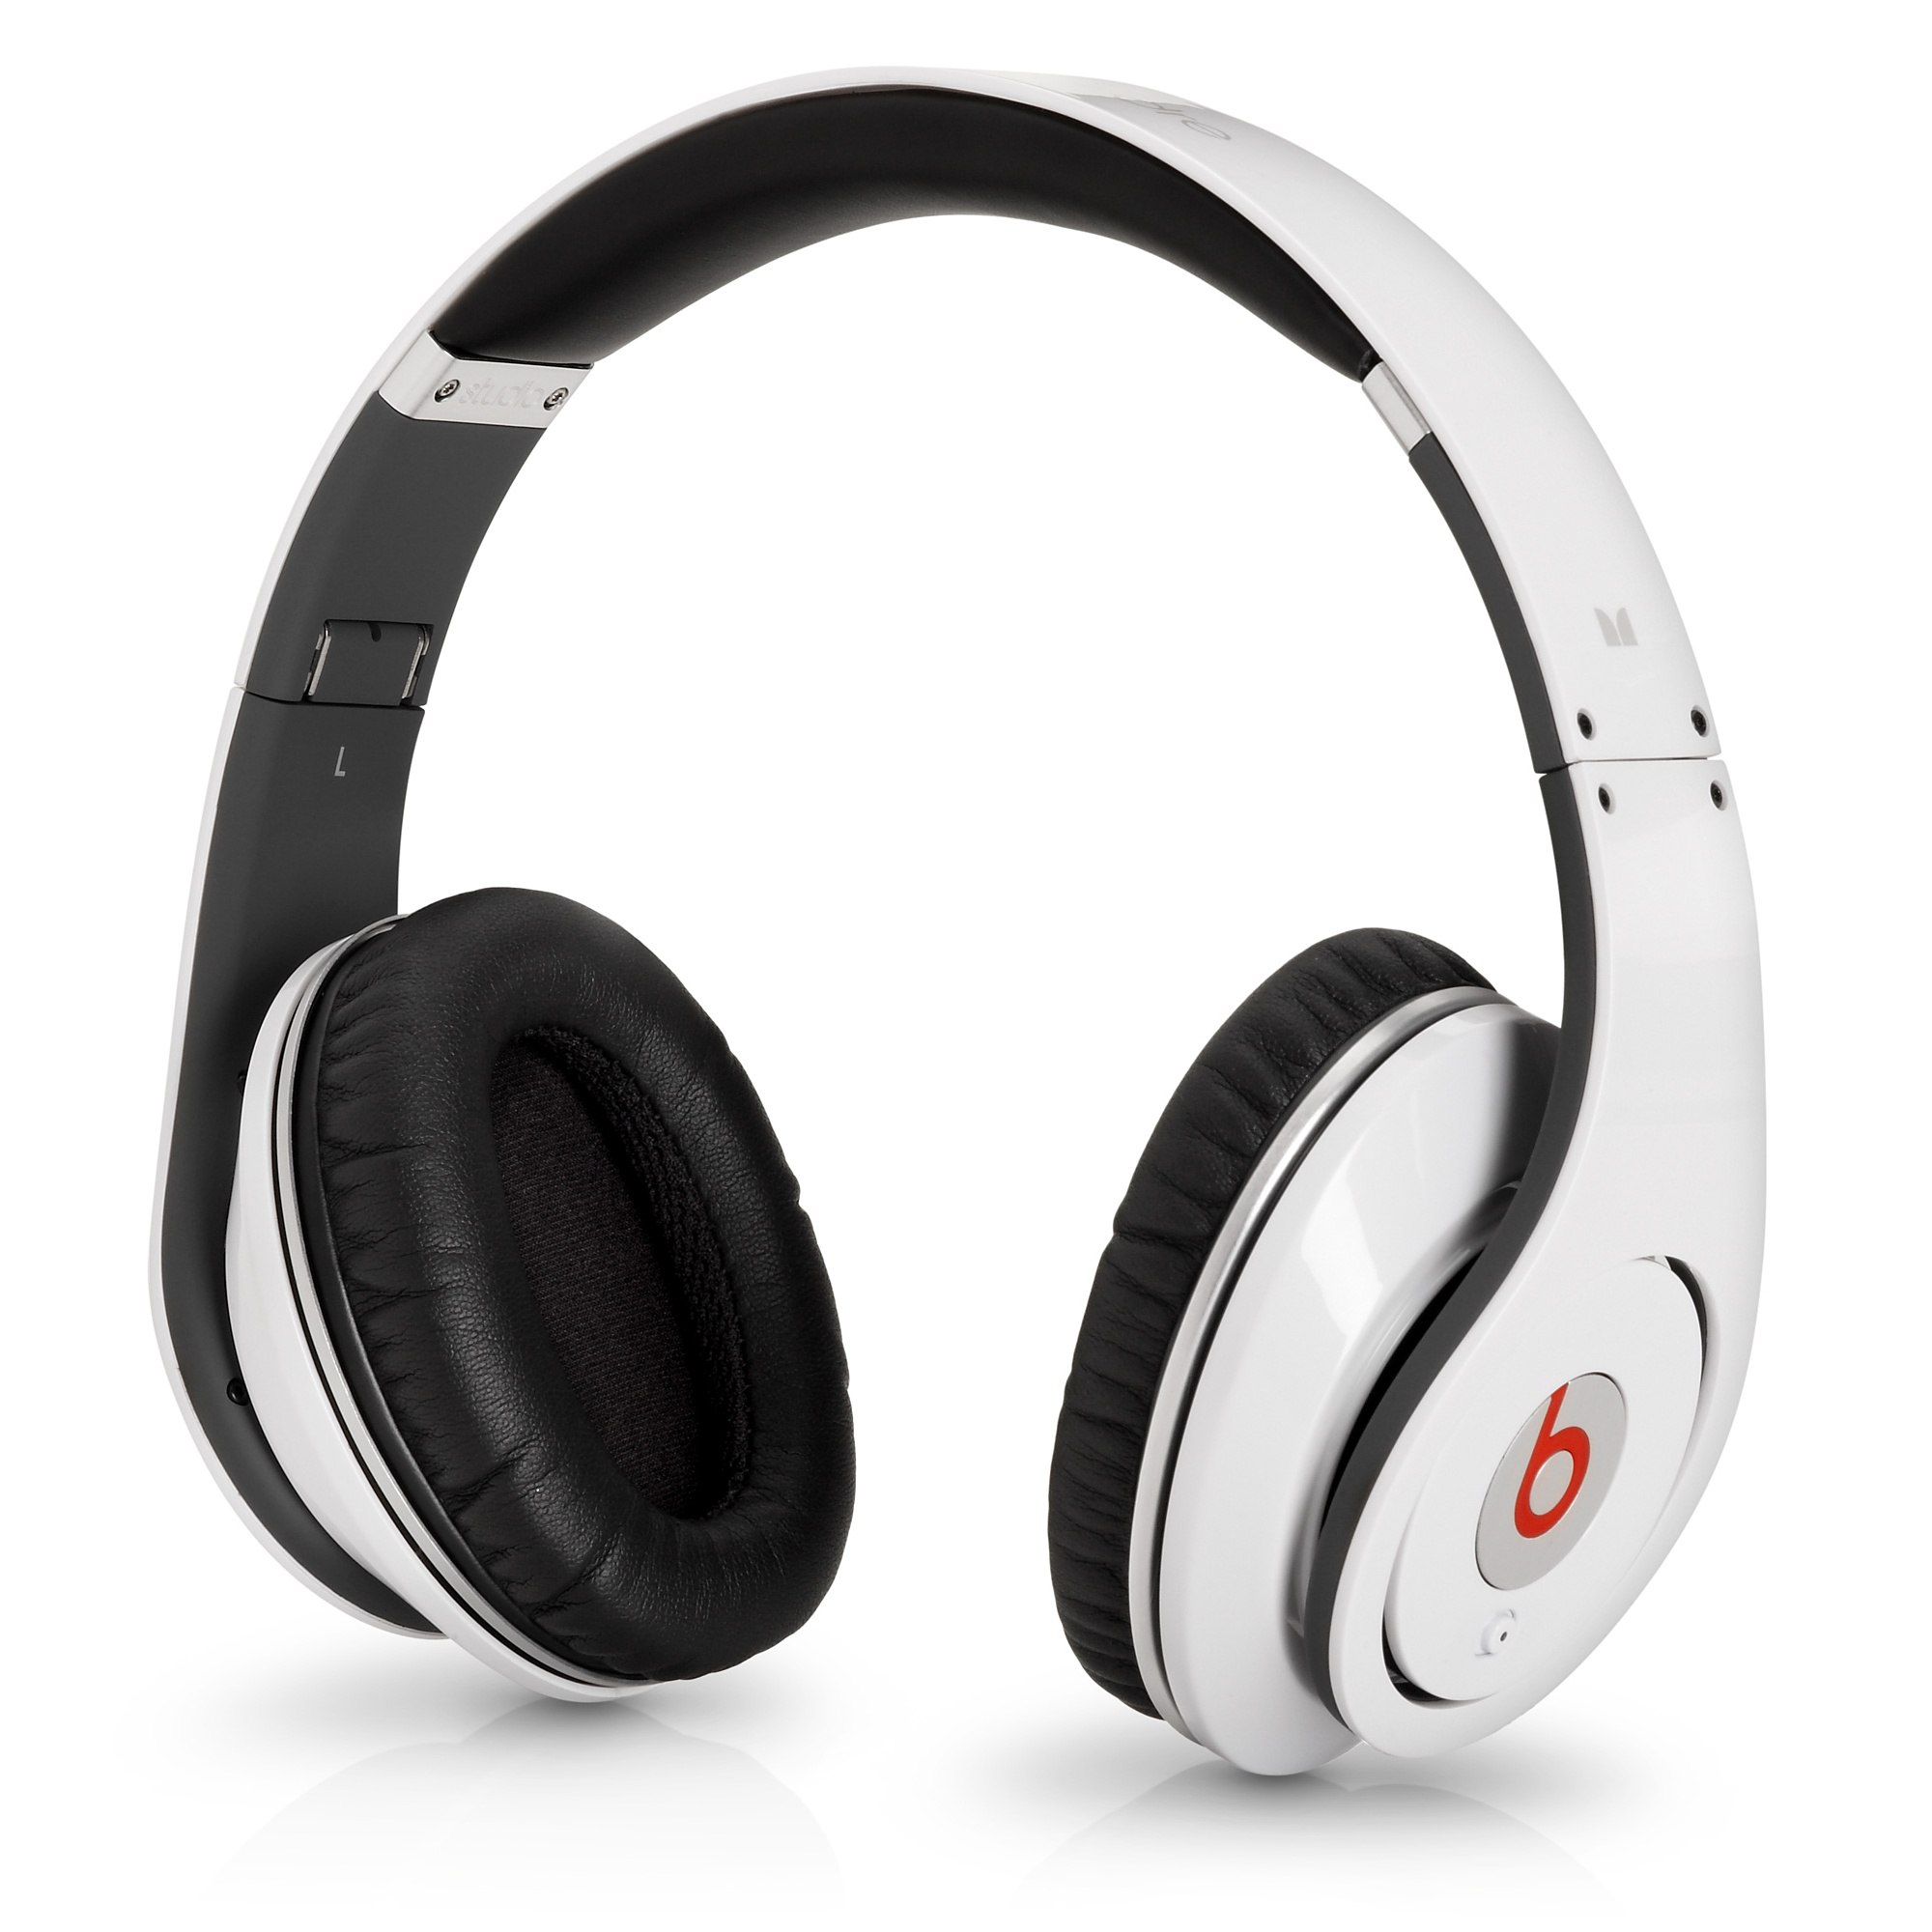 Beats Wireless Headphone. STN-13 - ORDERiT - A Reliable Shopping Solution!